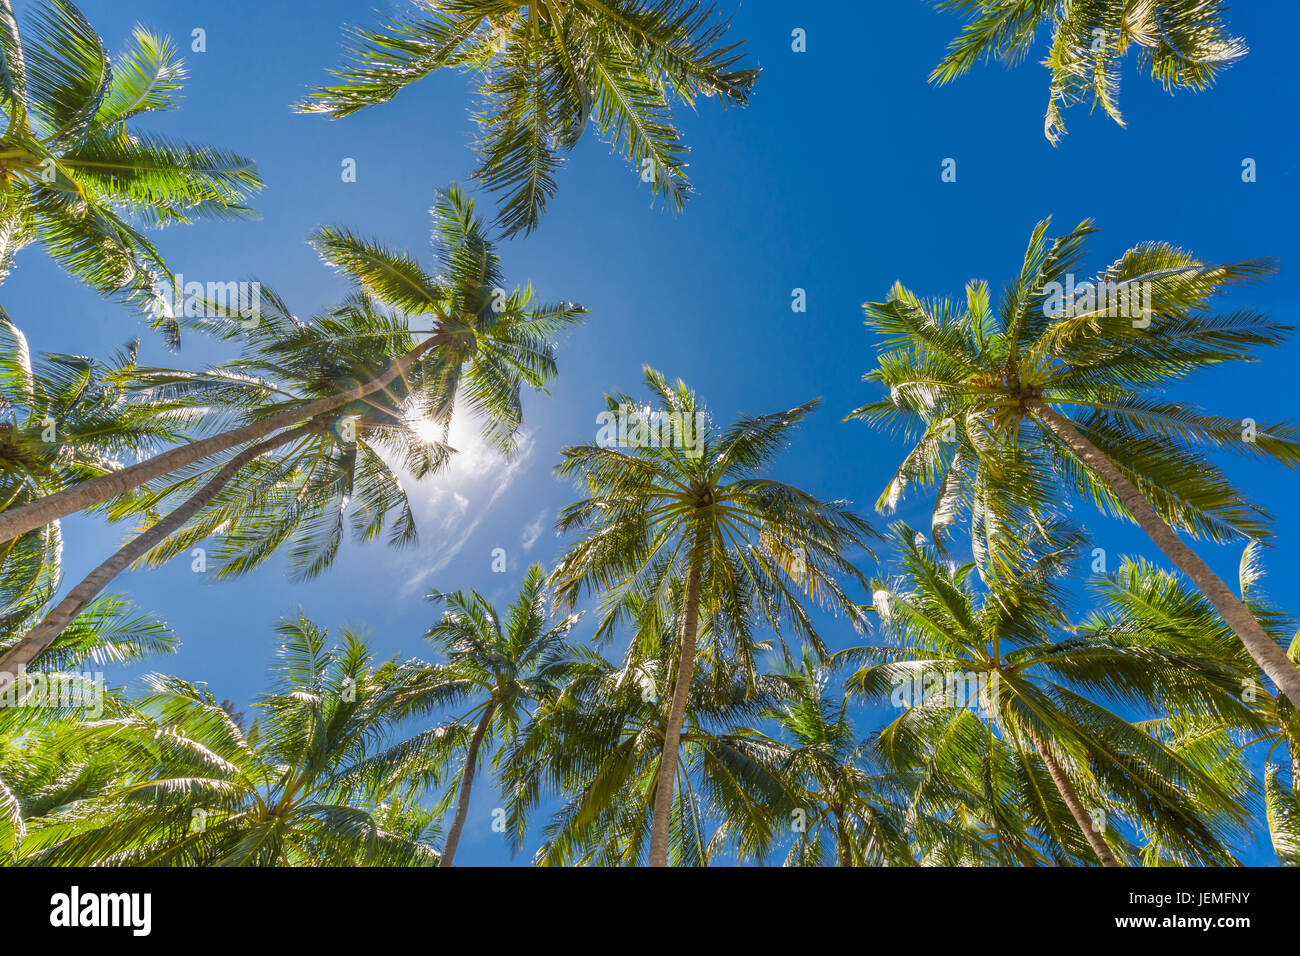 Amazing green palm trees with blue sky. Nature background - Stock Image